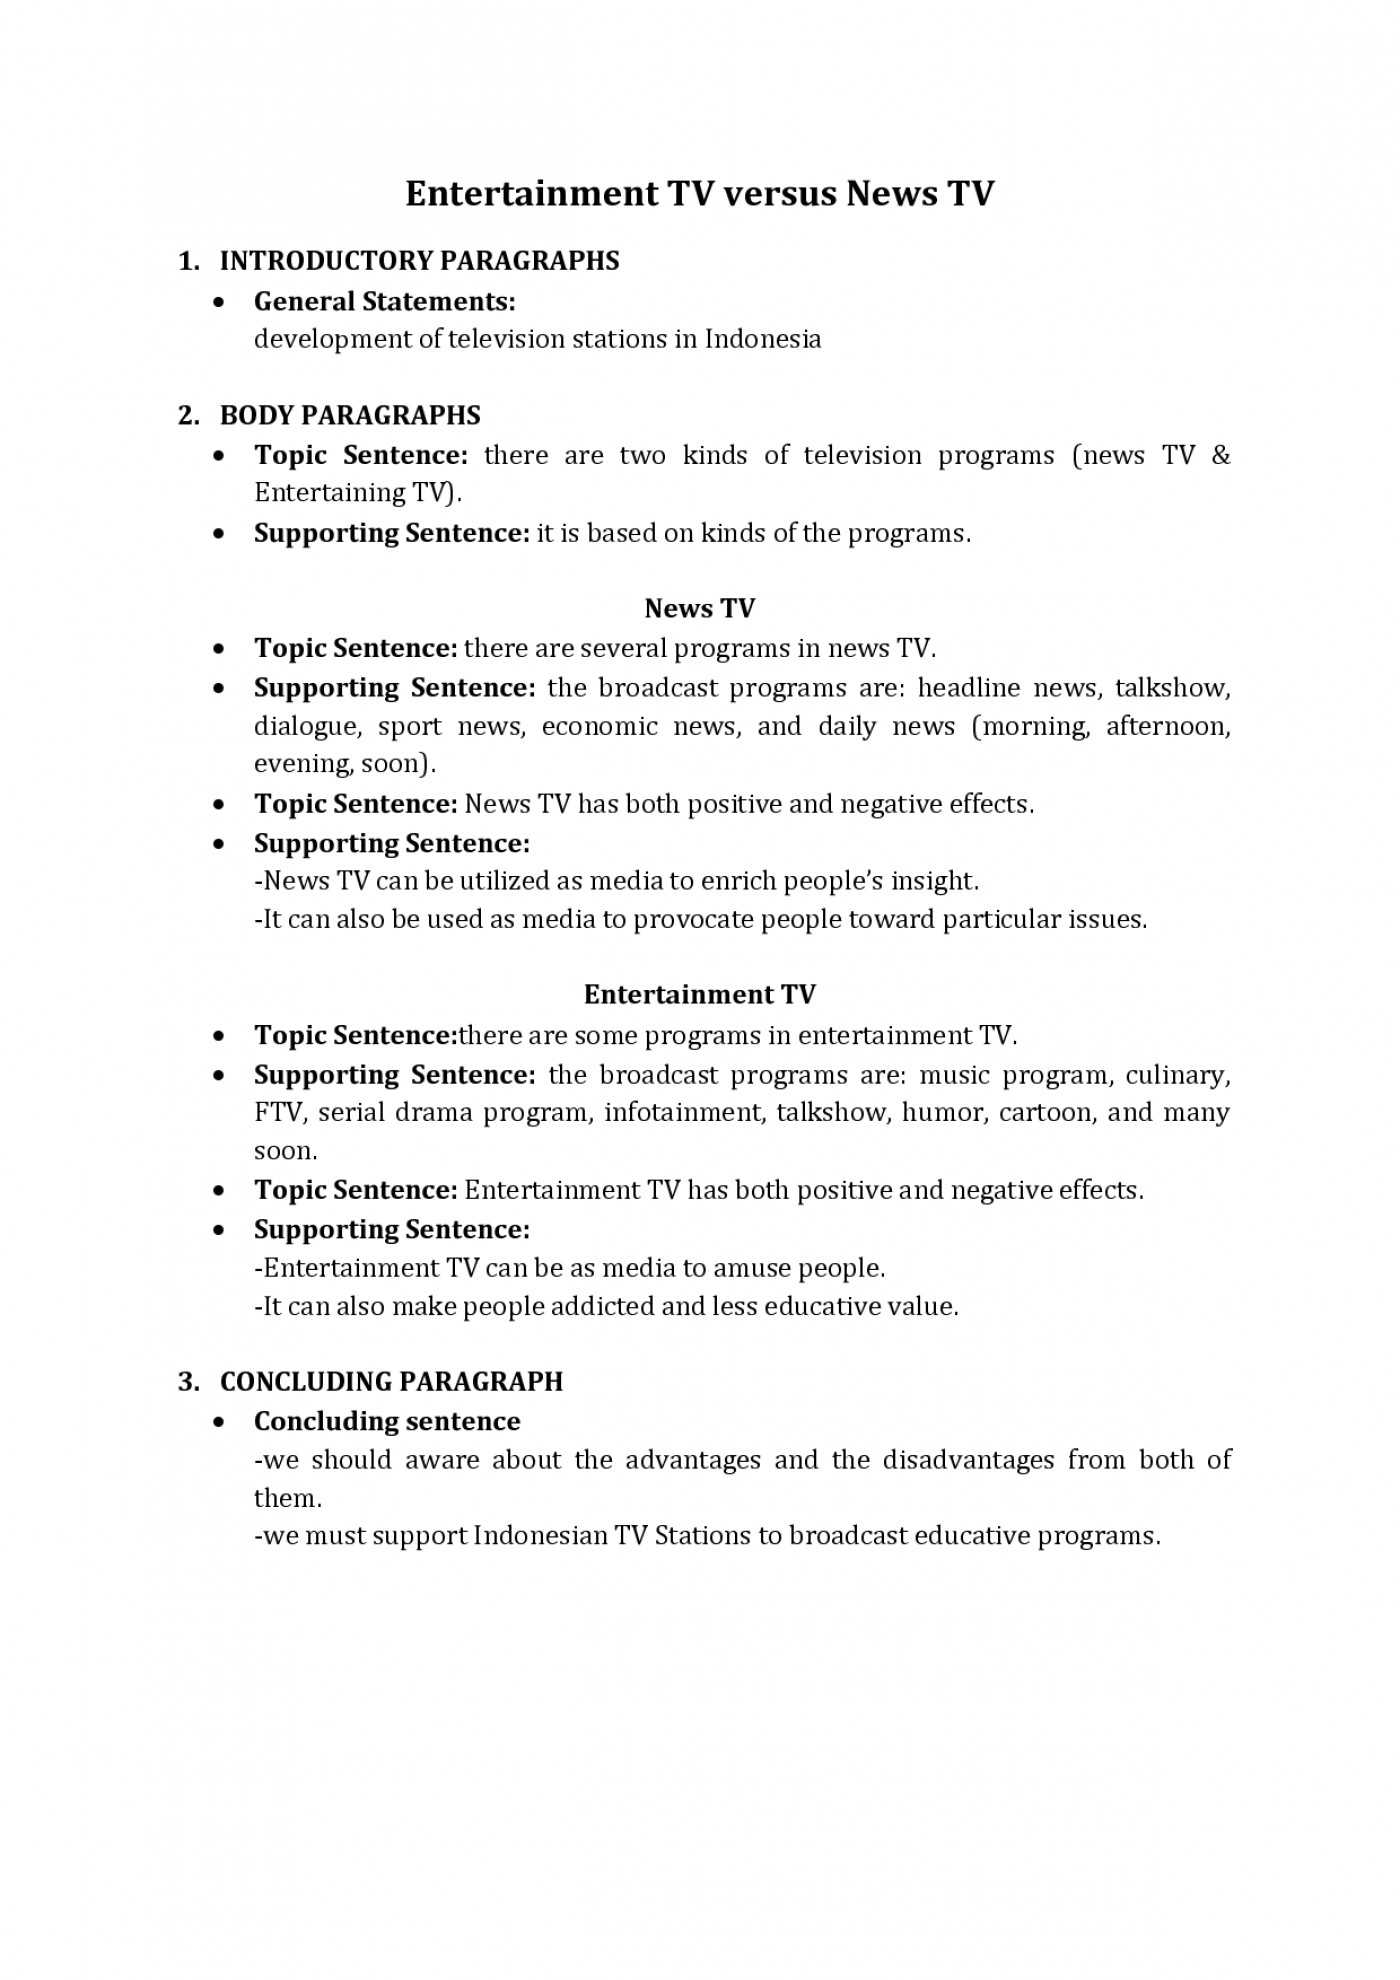 005 Fbunmxinib How To Write An Essay Outline Excellent For University A Research Paper Mla Format Pdf 1400